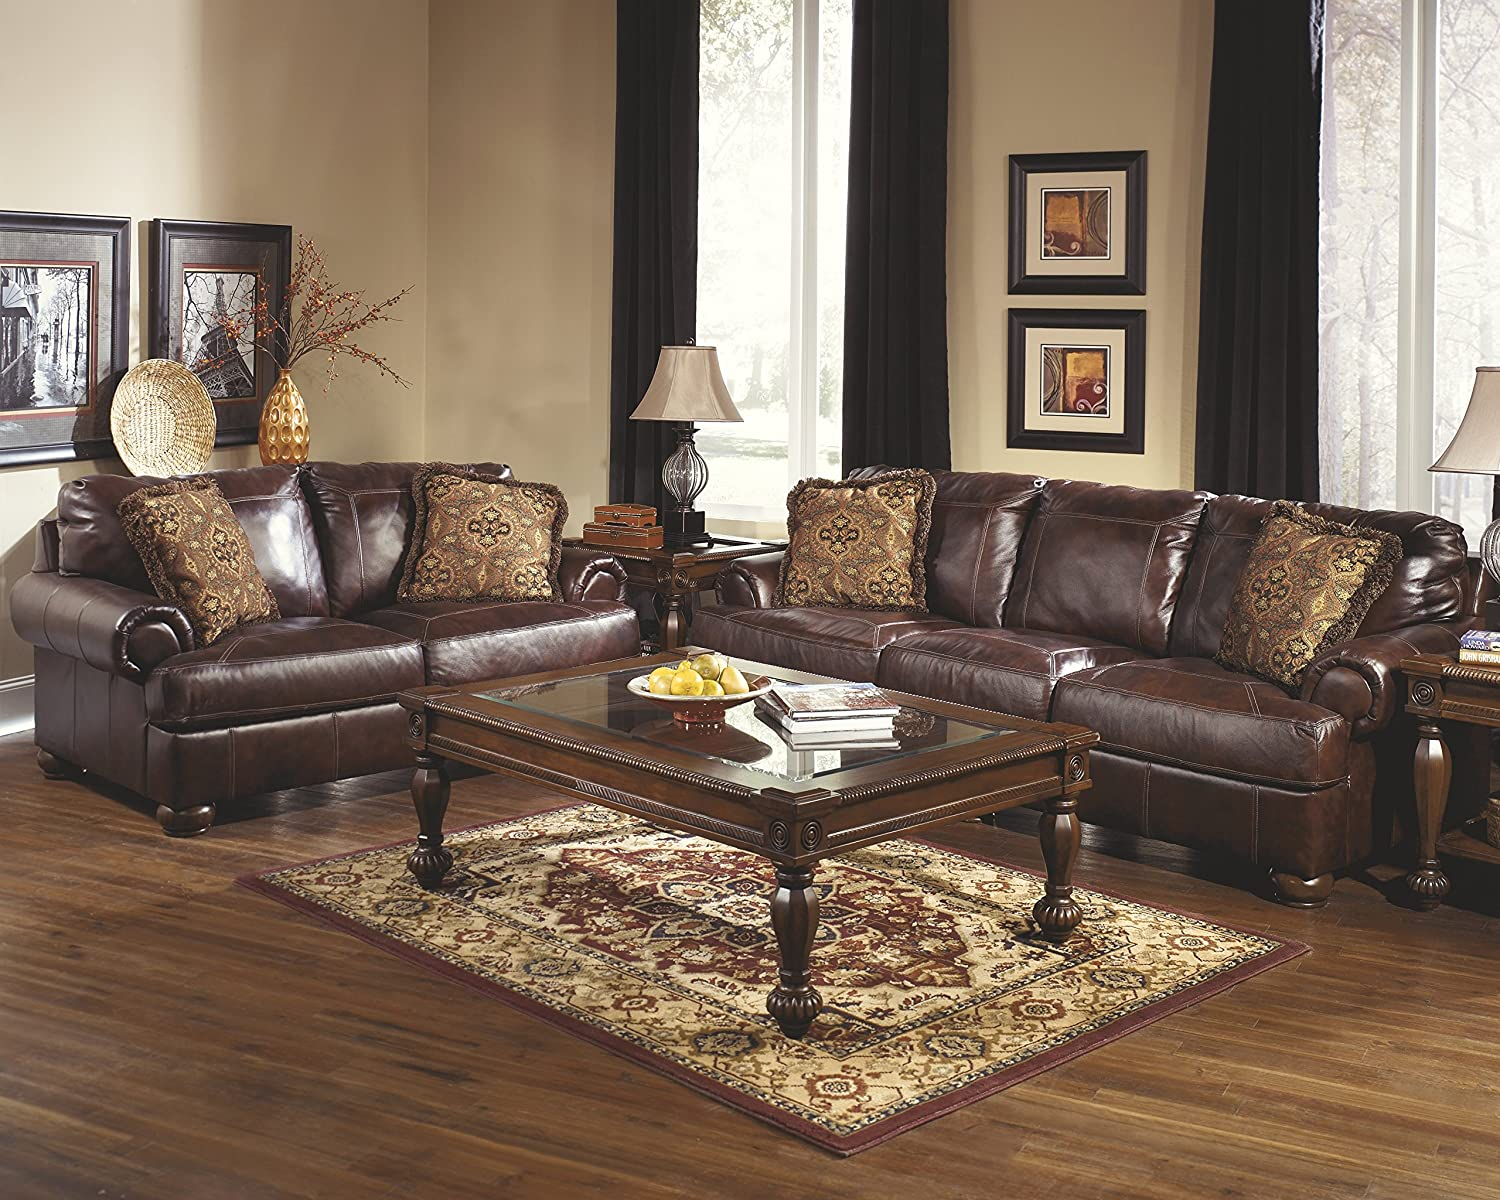 Amazon: Ashley Furniture Signature Design  Axiom Sofa With 2 Accent  Pillows  Genuine Leather  Grand Elegance  Walnut: Kitchen & Dining